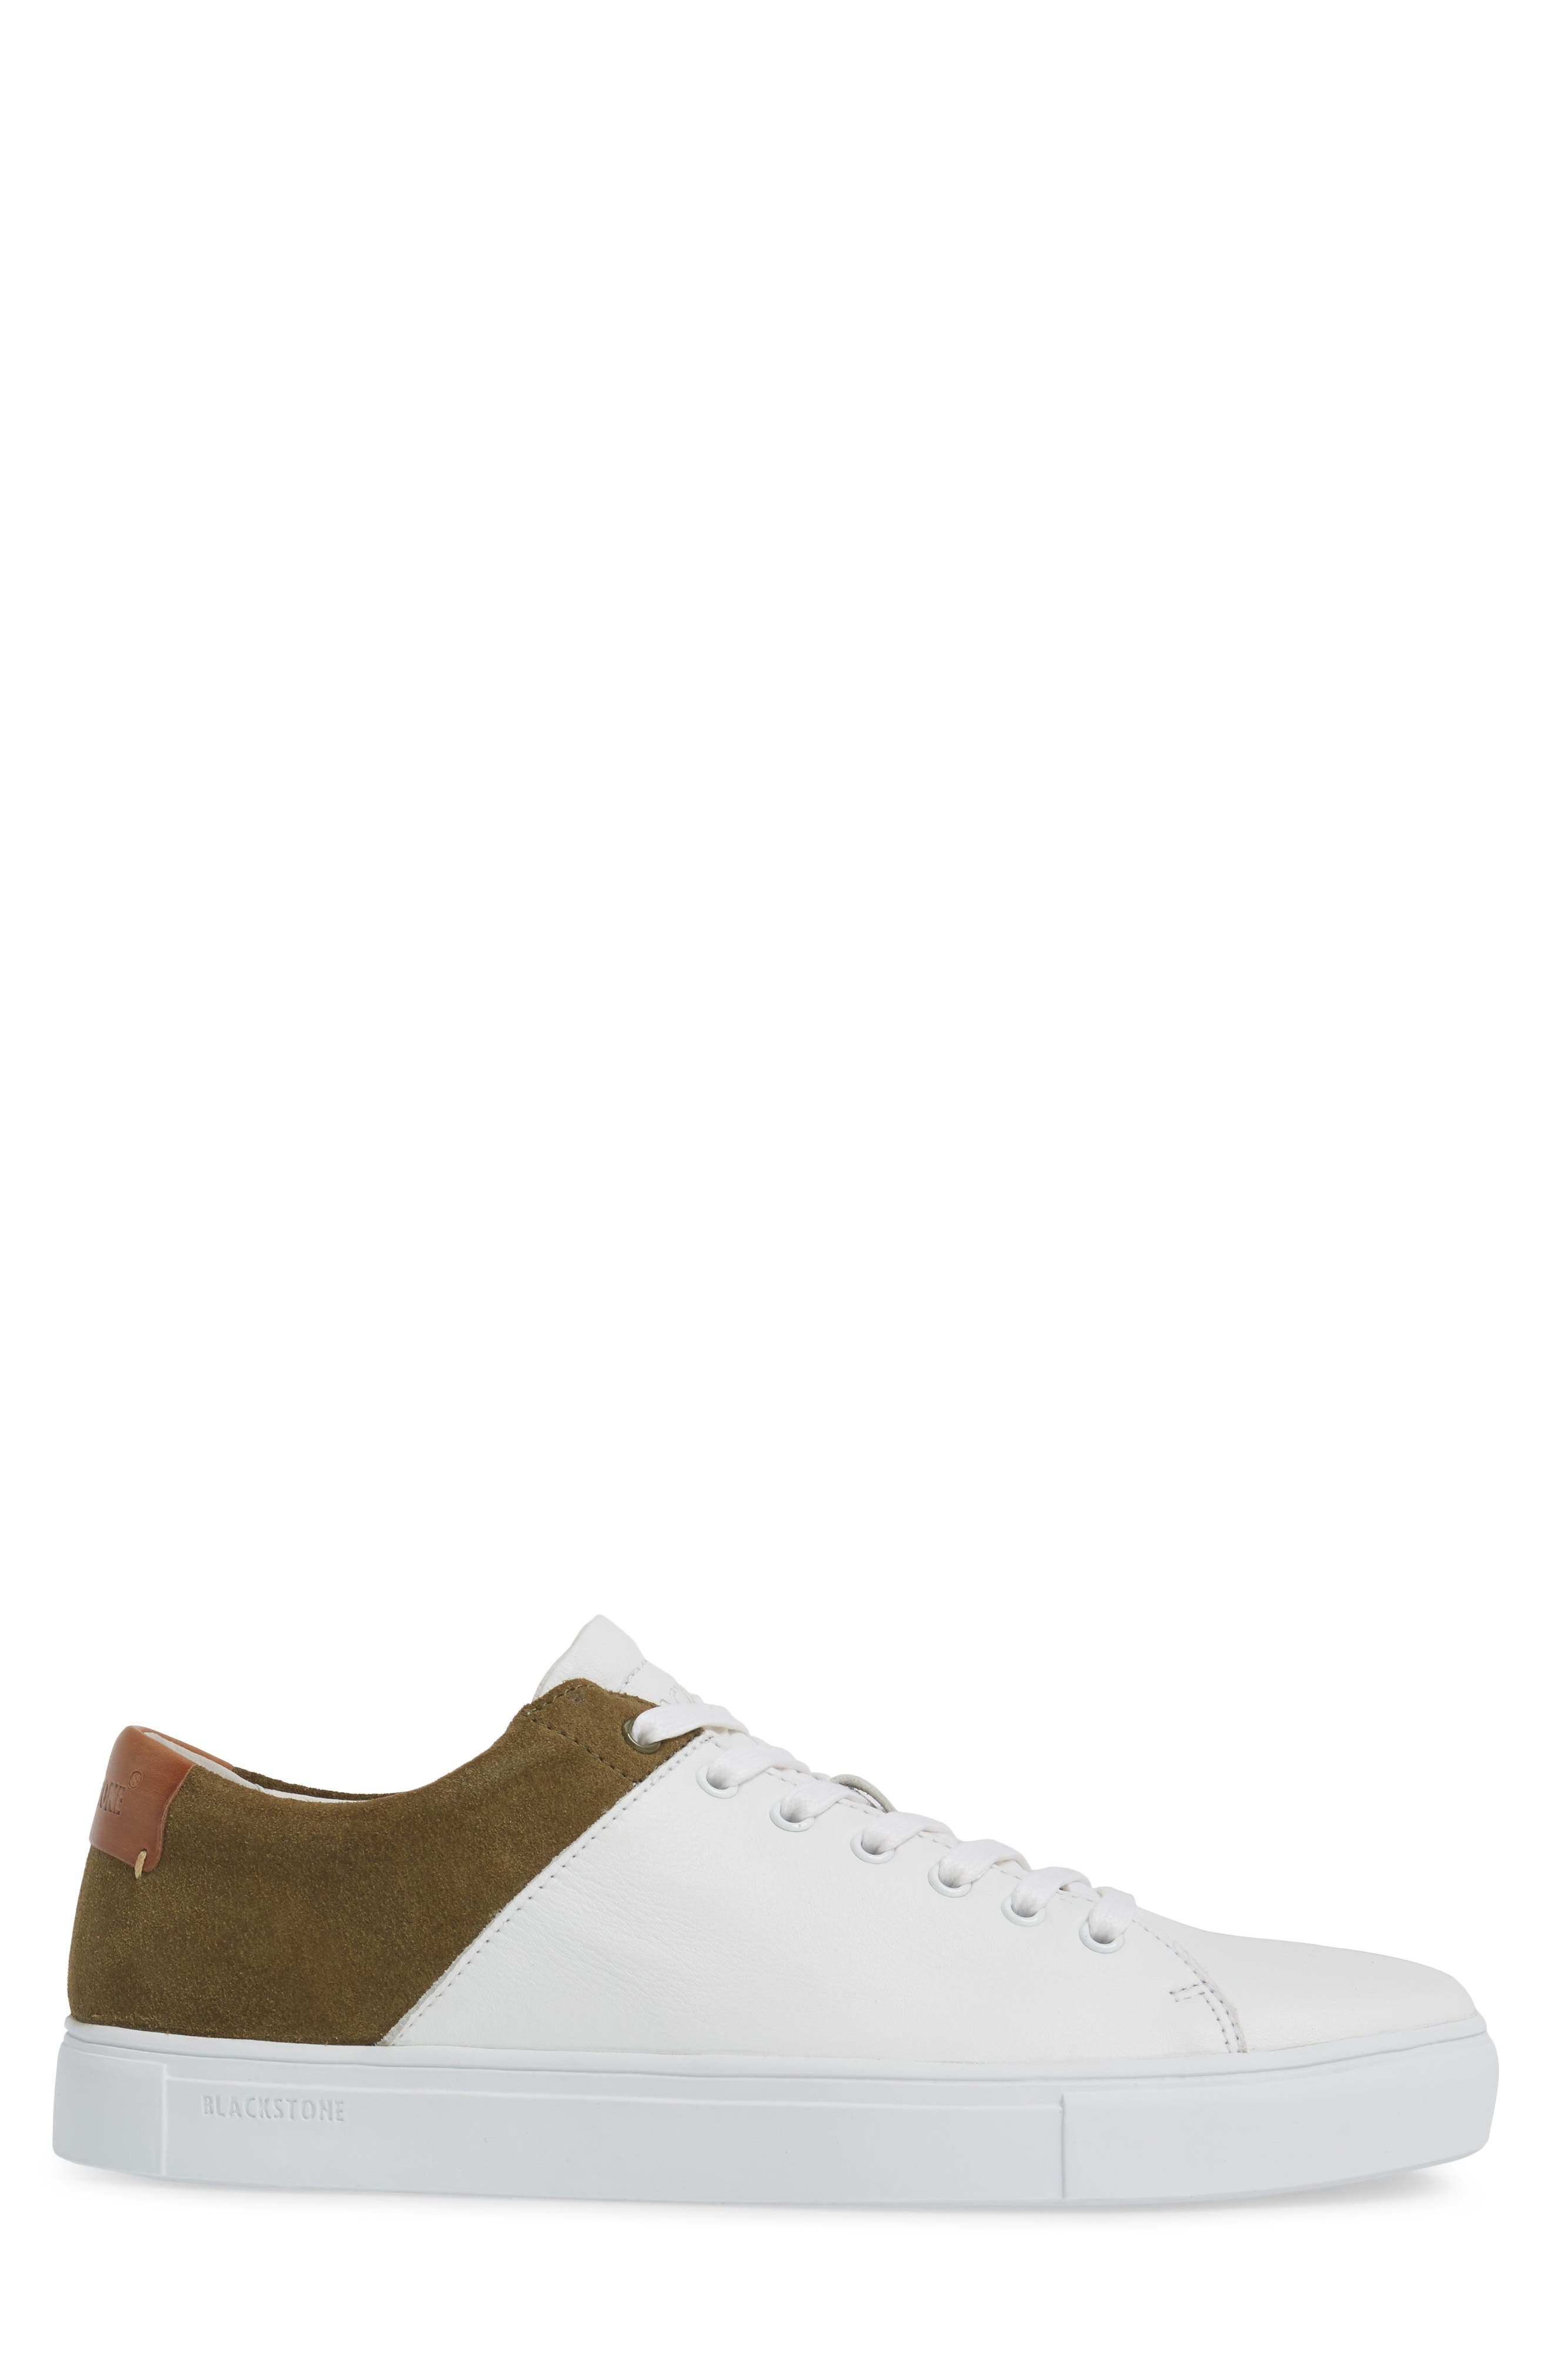 NM03 Two-Tone Sneaker,                             Alternate thumbnail 3, color,                             White/ Olive Leather